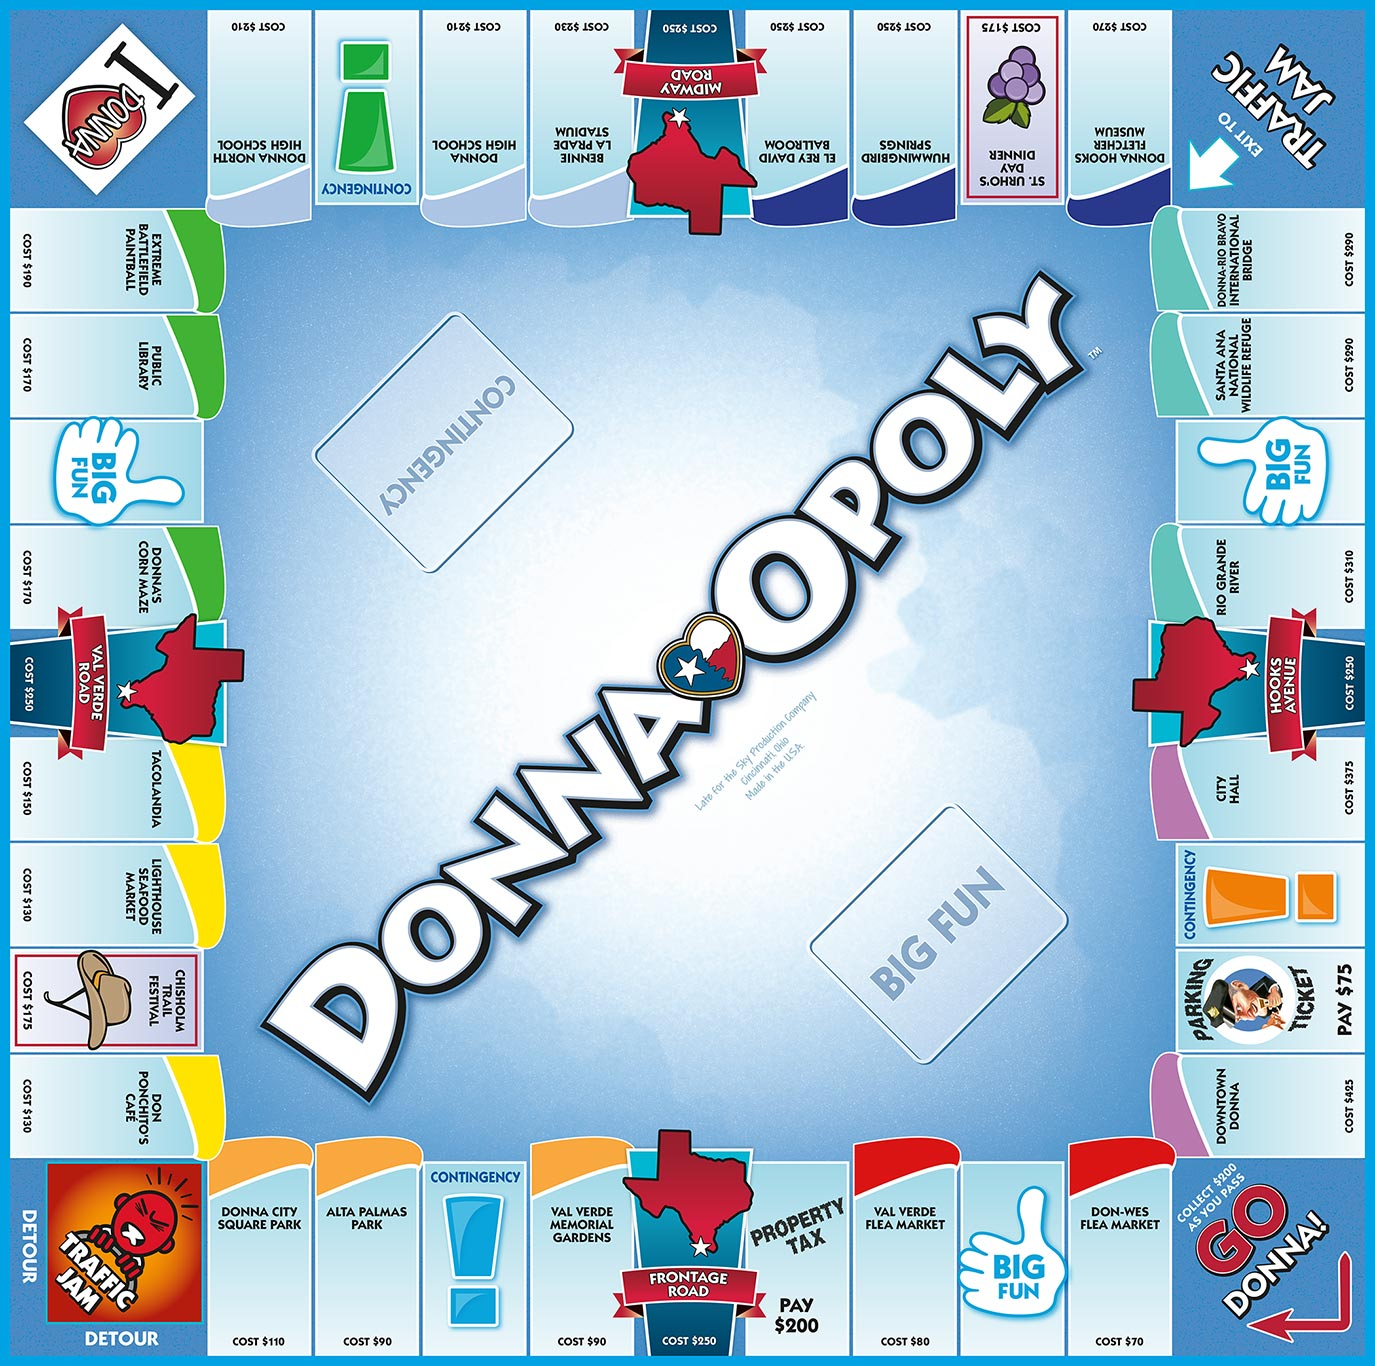 DONNA-OPOLY Board Game